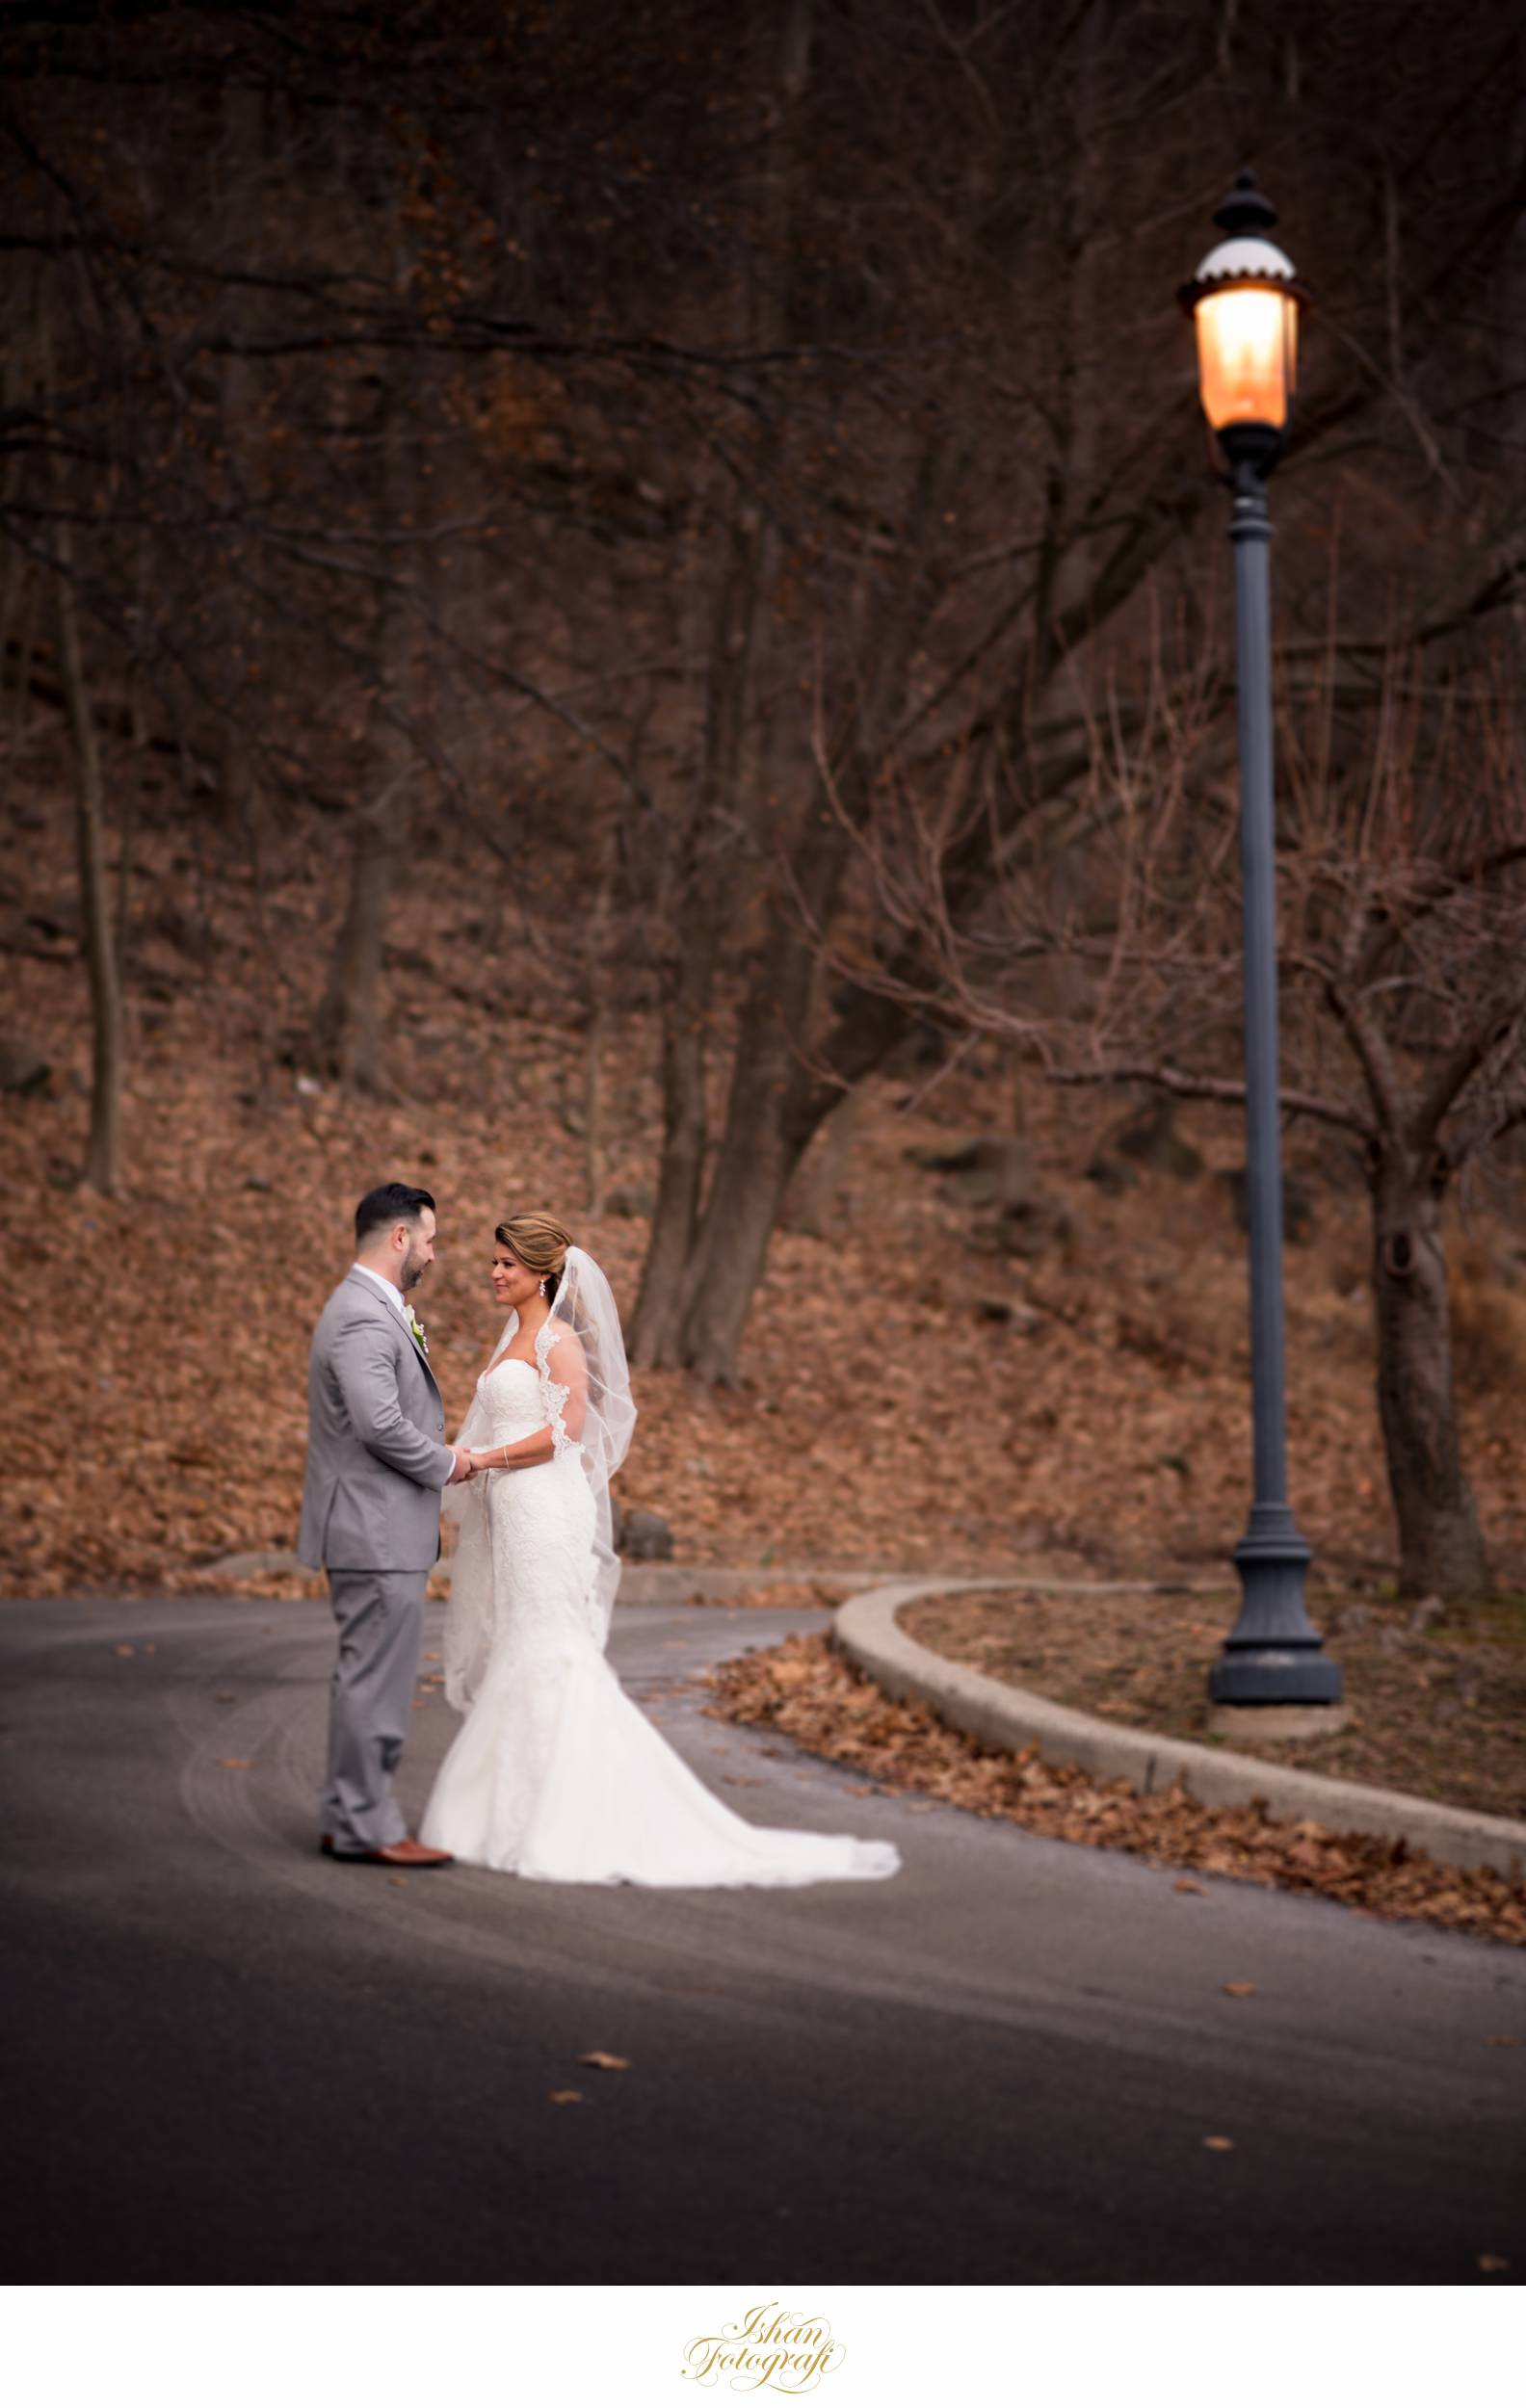 One of our favorite shots of Justin & Mehtap from their wedding at  The Bethwood , NJ.